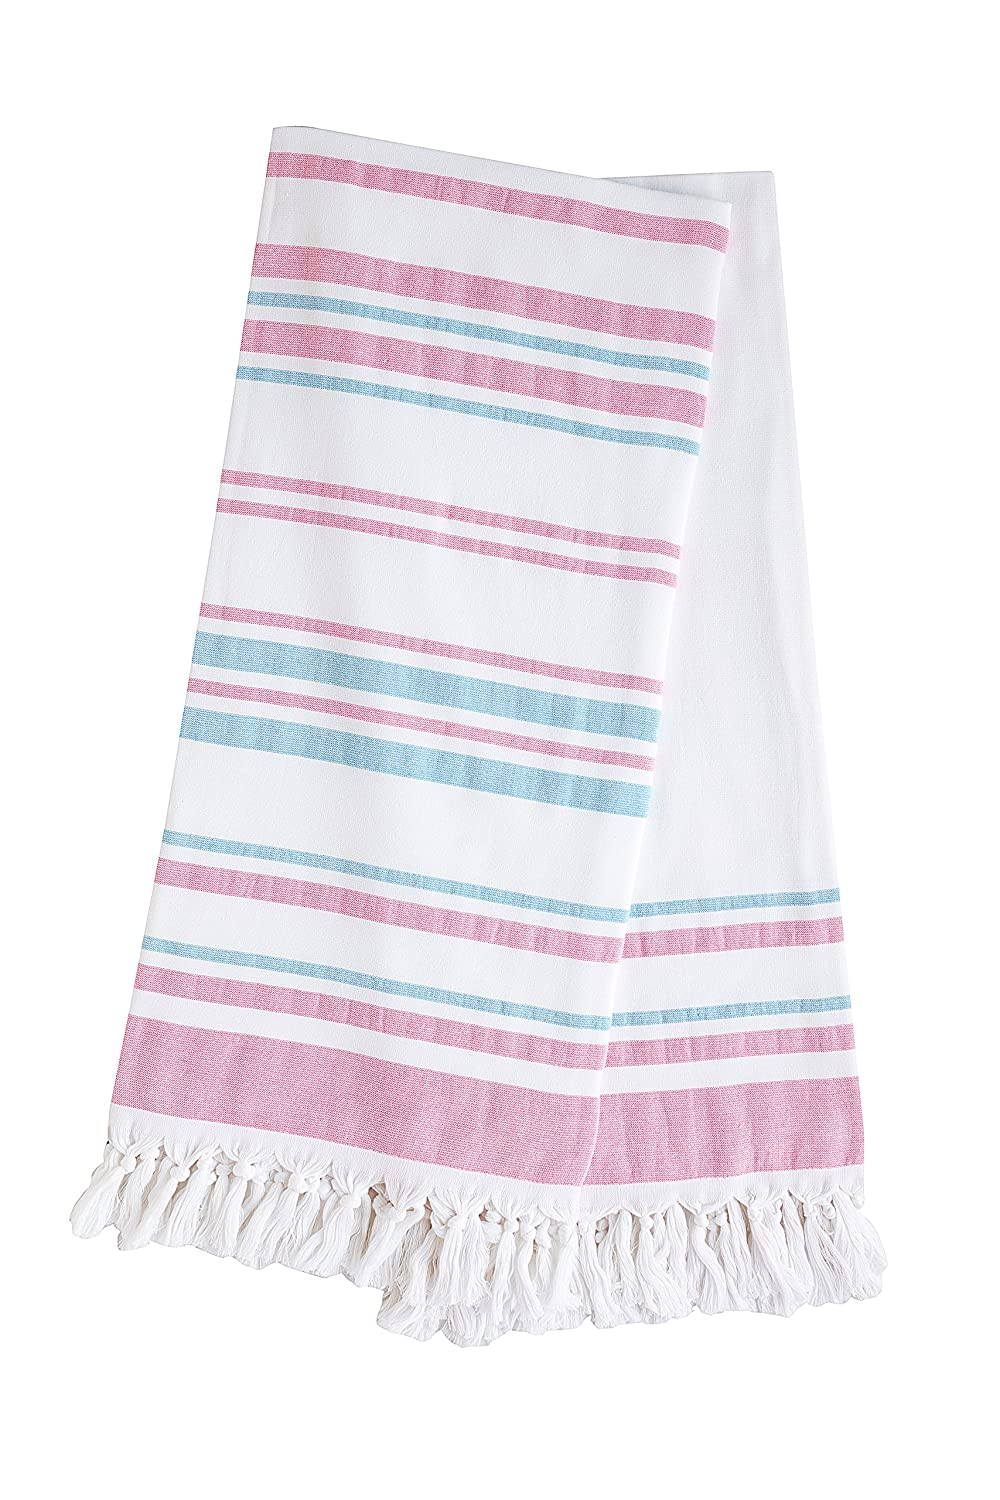 Z&R HOME TURKISH PESTEMAL TOWEL (pink - turquoise)